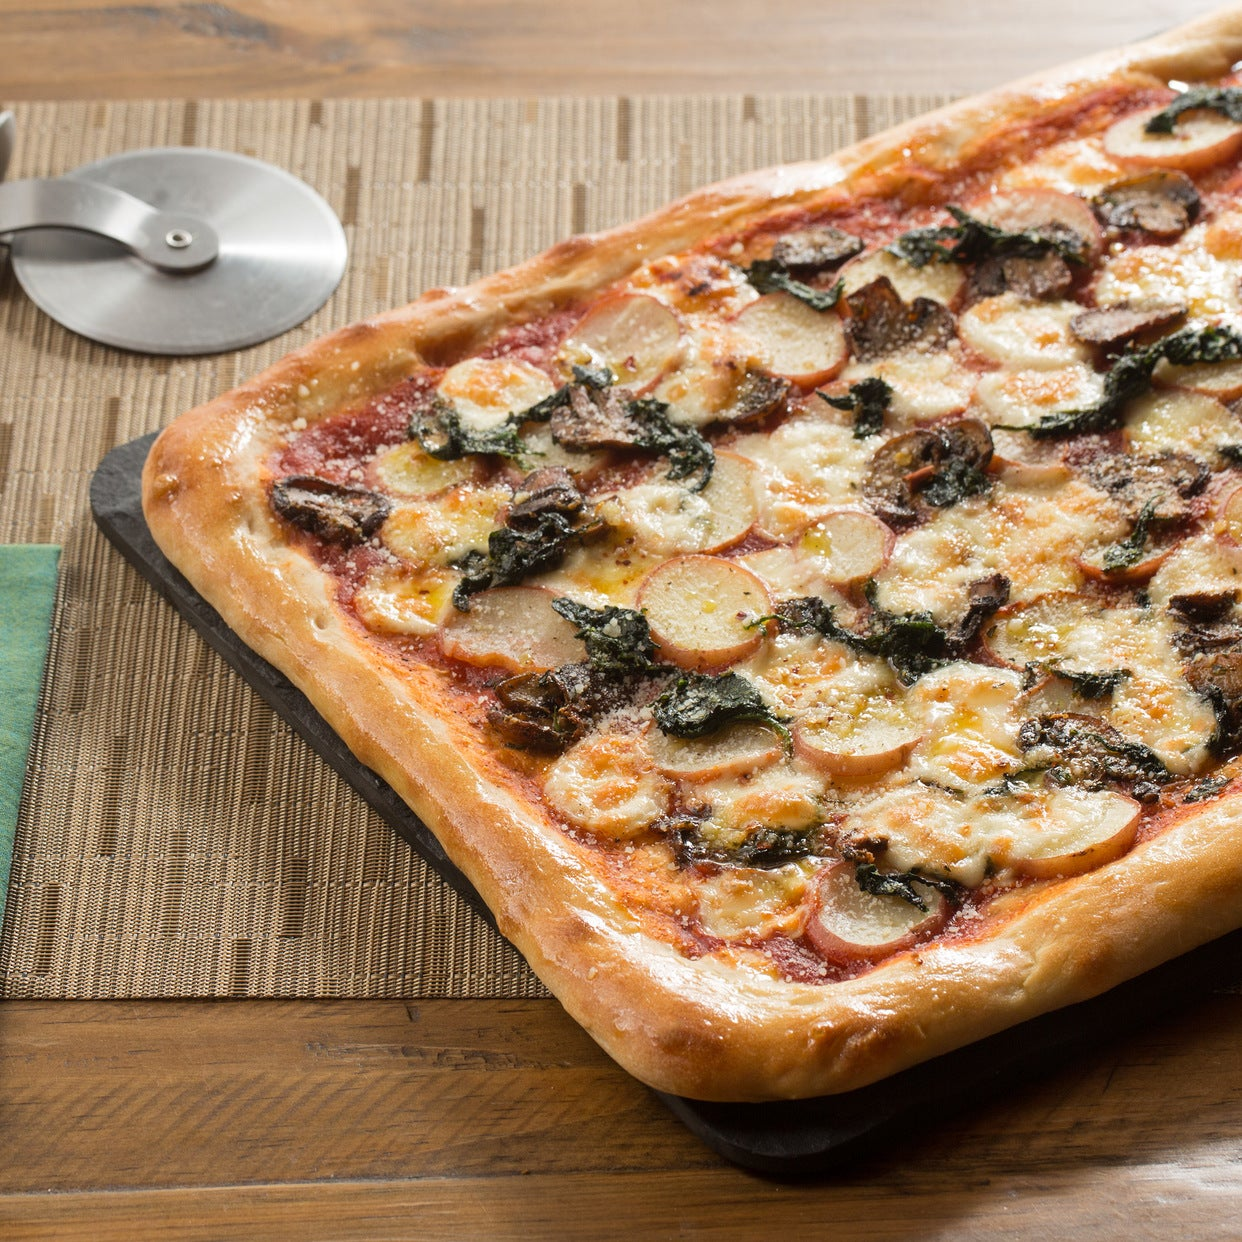 Mushroom & Potato Pizza with Fontina Cheese, Spinach & Garlic Oil